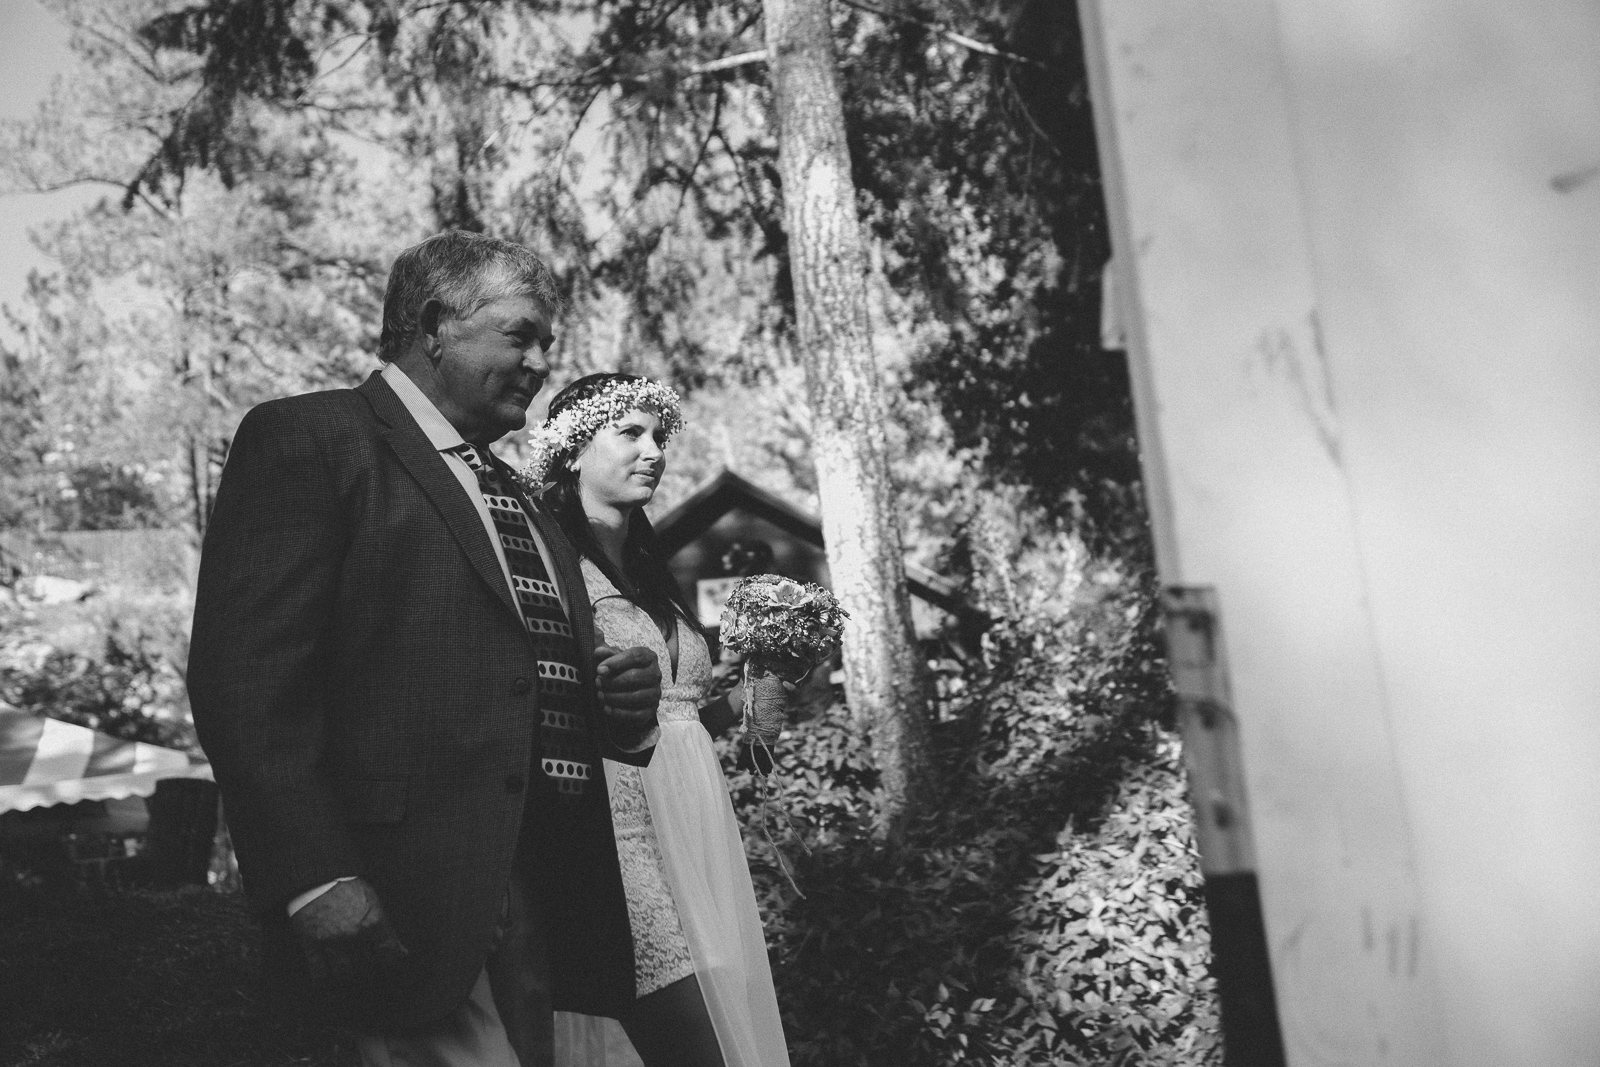 060-wedding-party-bus-fun-photography-ceremony